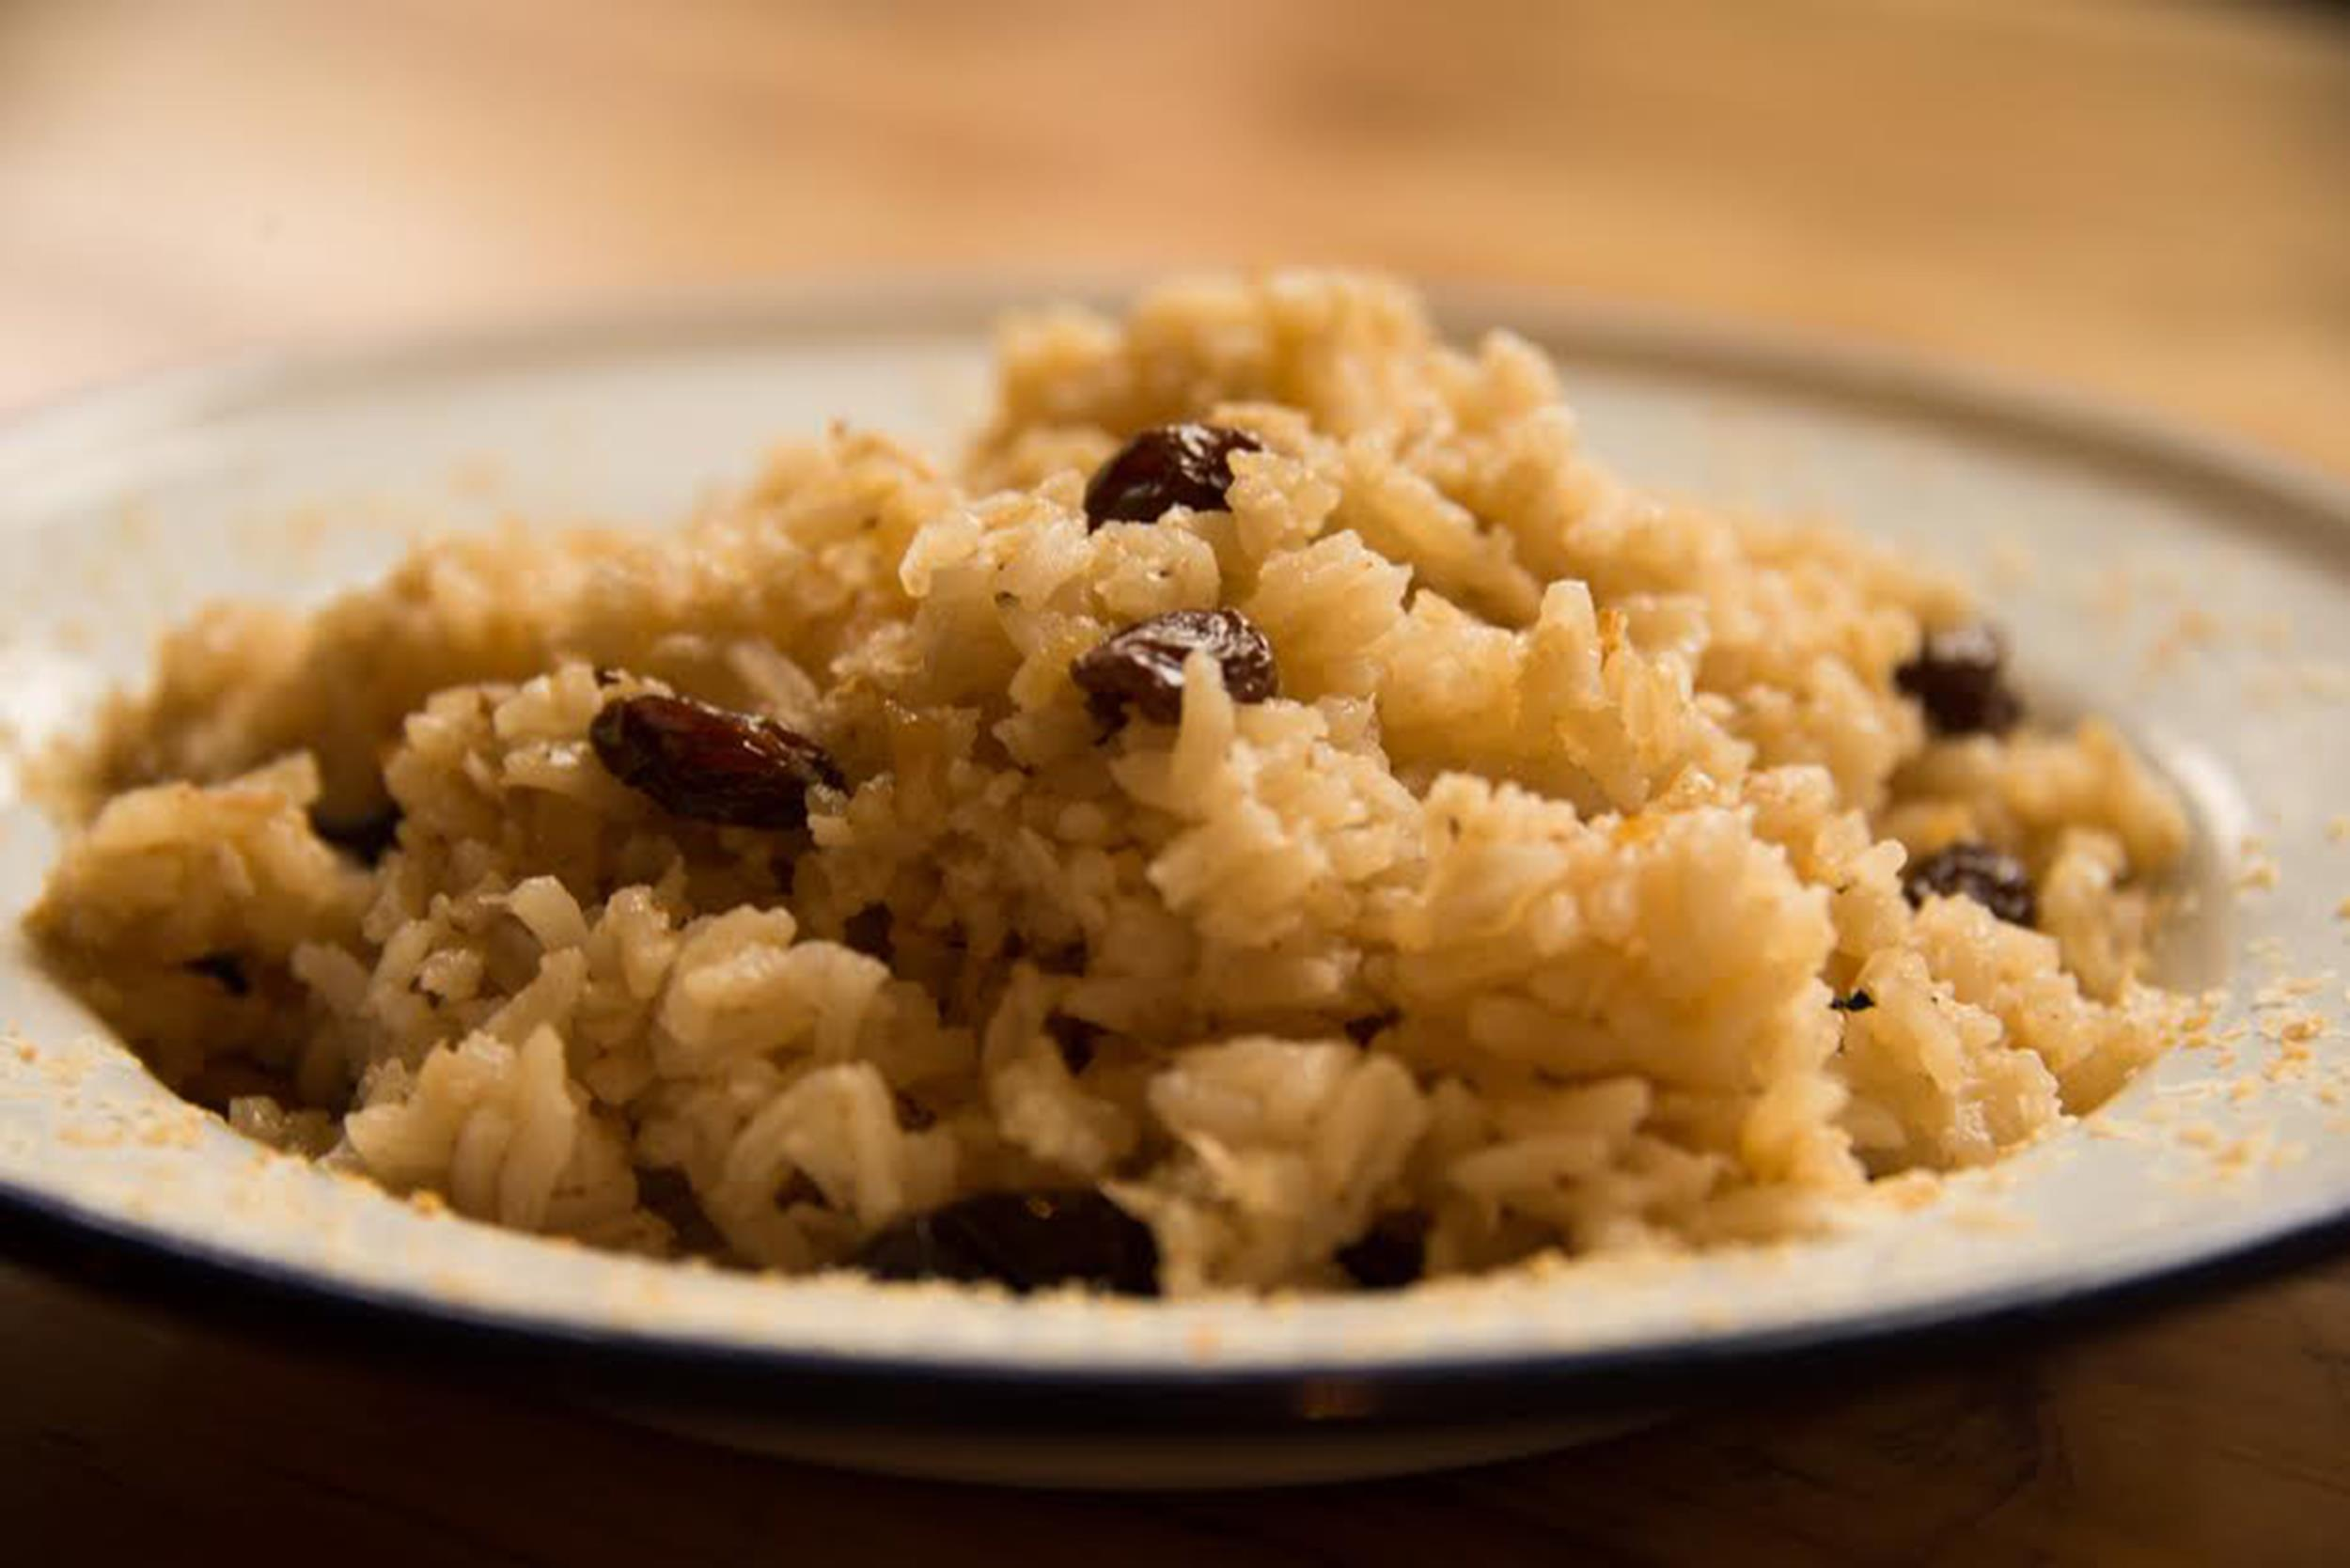 ... colombia this sweet rice dish is arroz con coco colombian coconut rice